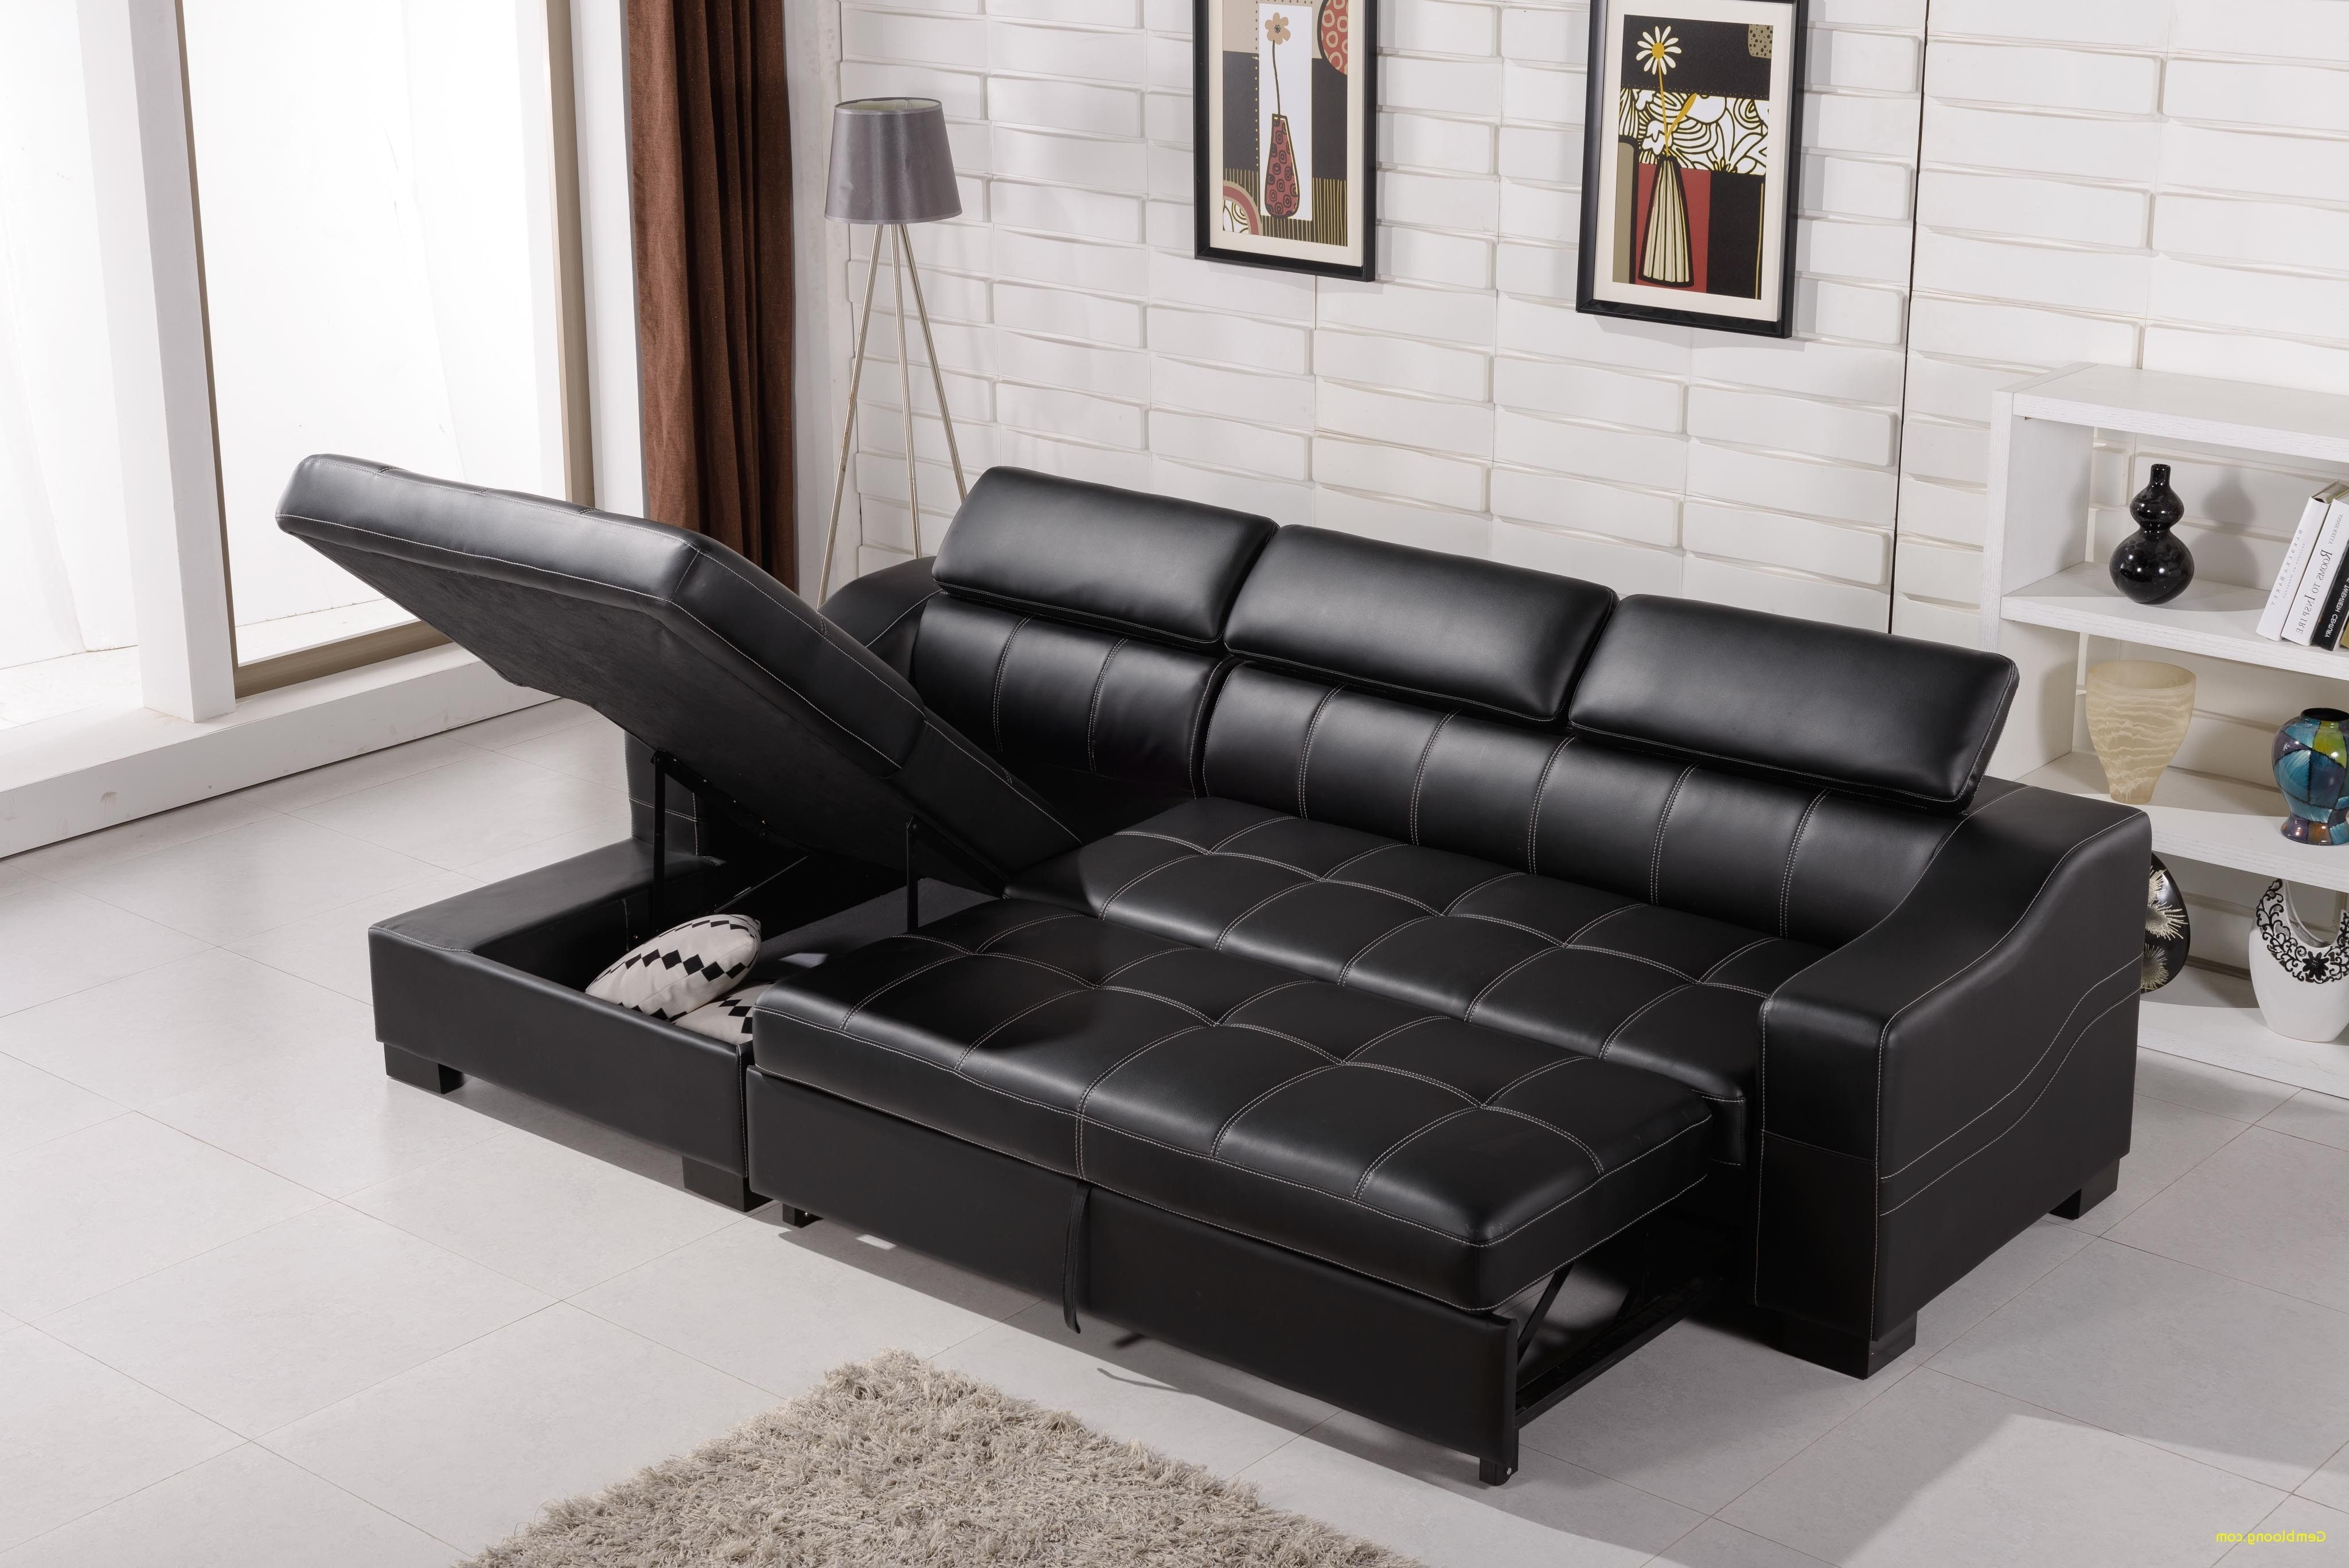 Sleeper Sofa With Storage Chaise Inspirational Incognito Sectional Intended For 2017 Sleeper Sofas With Storage Chaise (View 6 of 15)